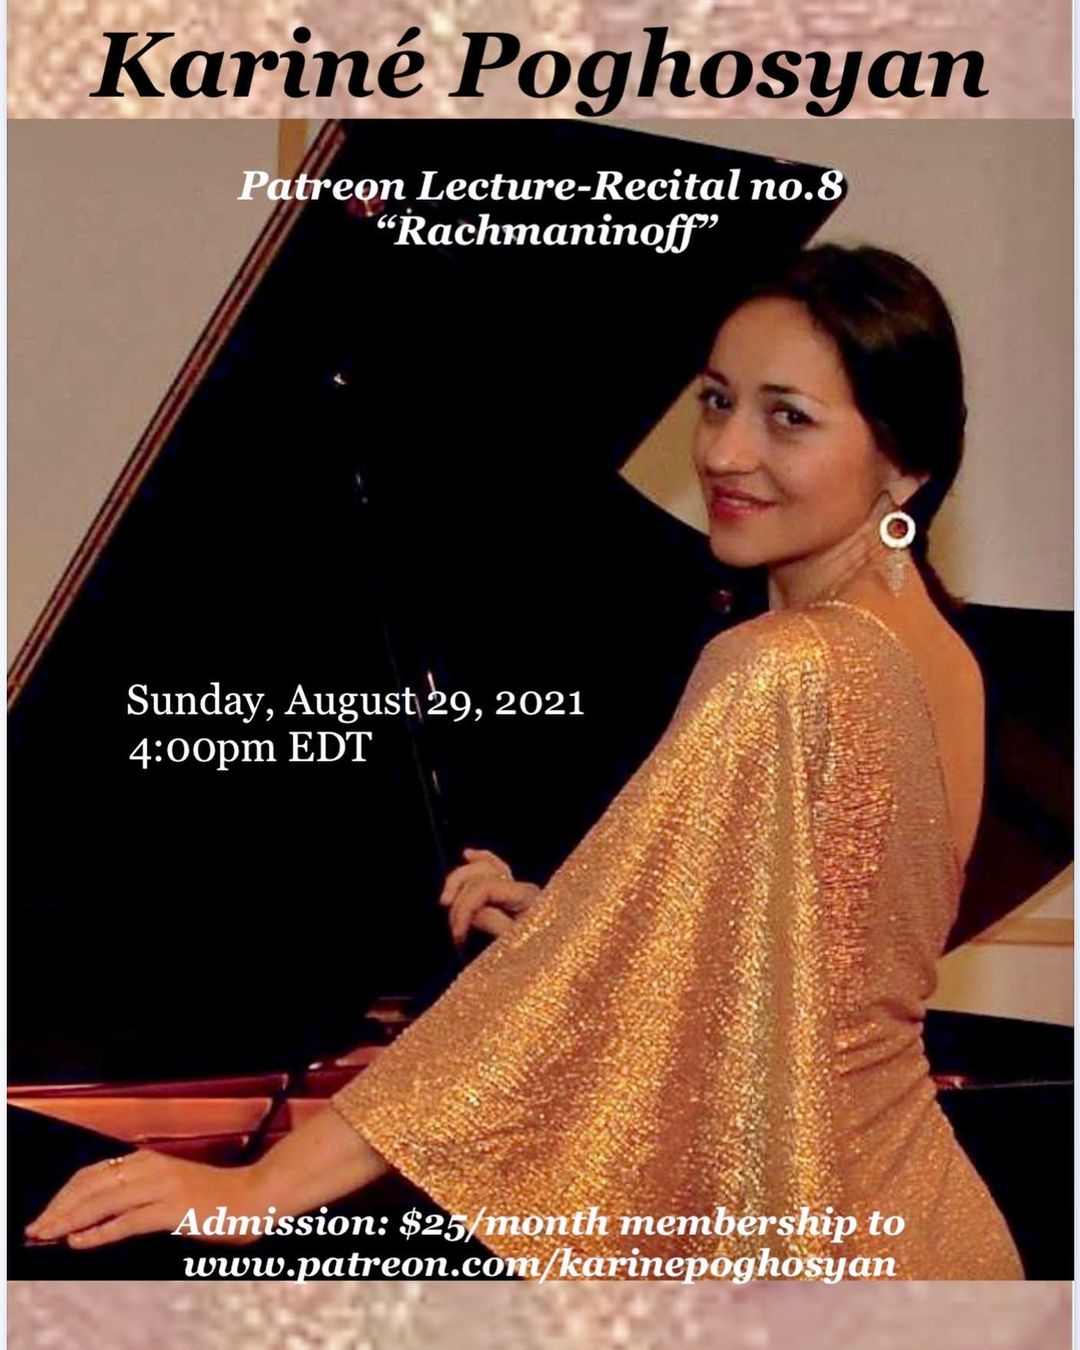 Concert Pianist   New York   Isolation Concerts   Karine Poghosyan